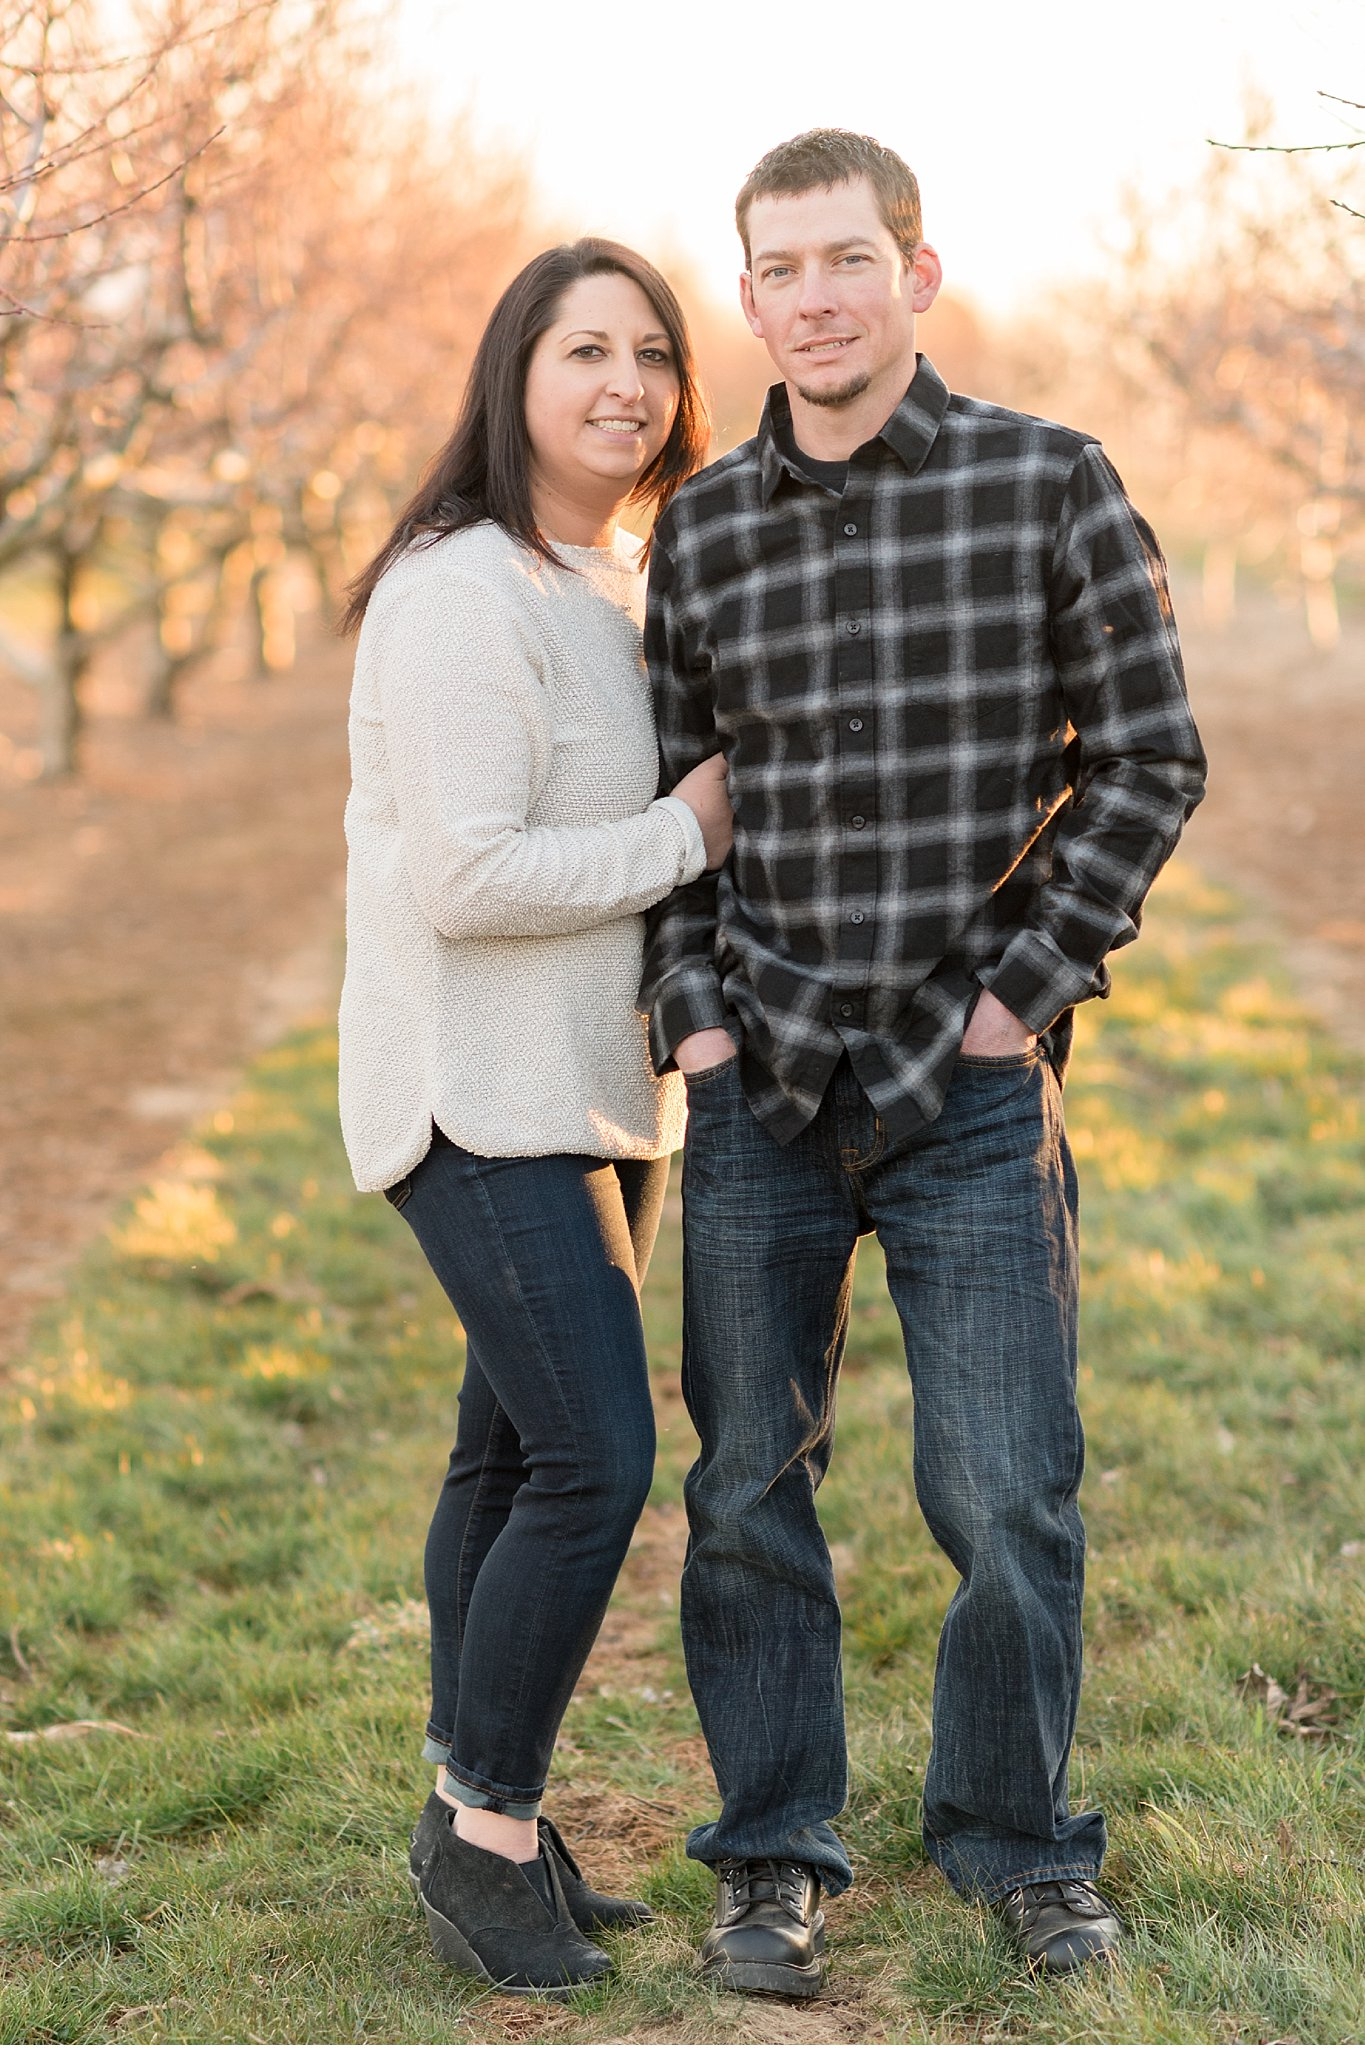 New Providence orchard Lancaster County Wedding and engagement photographer photo_0954.jpg